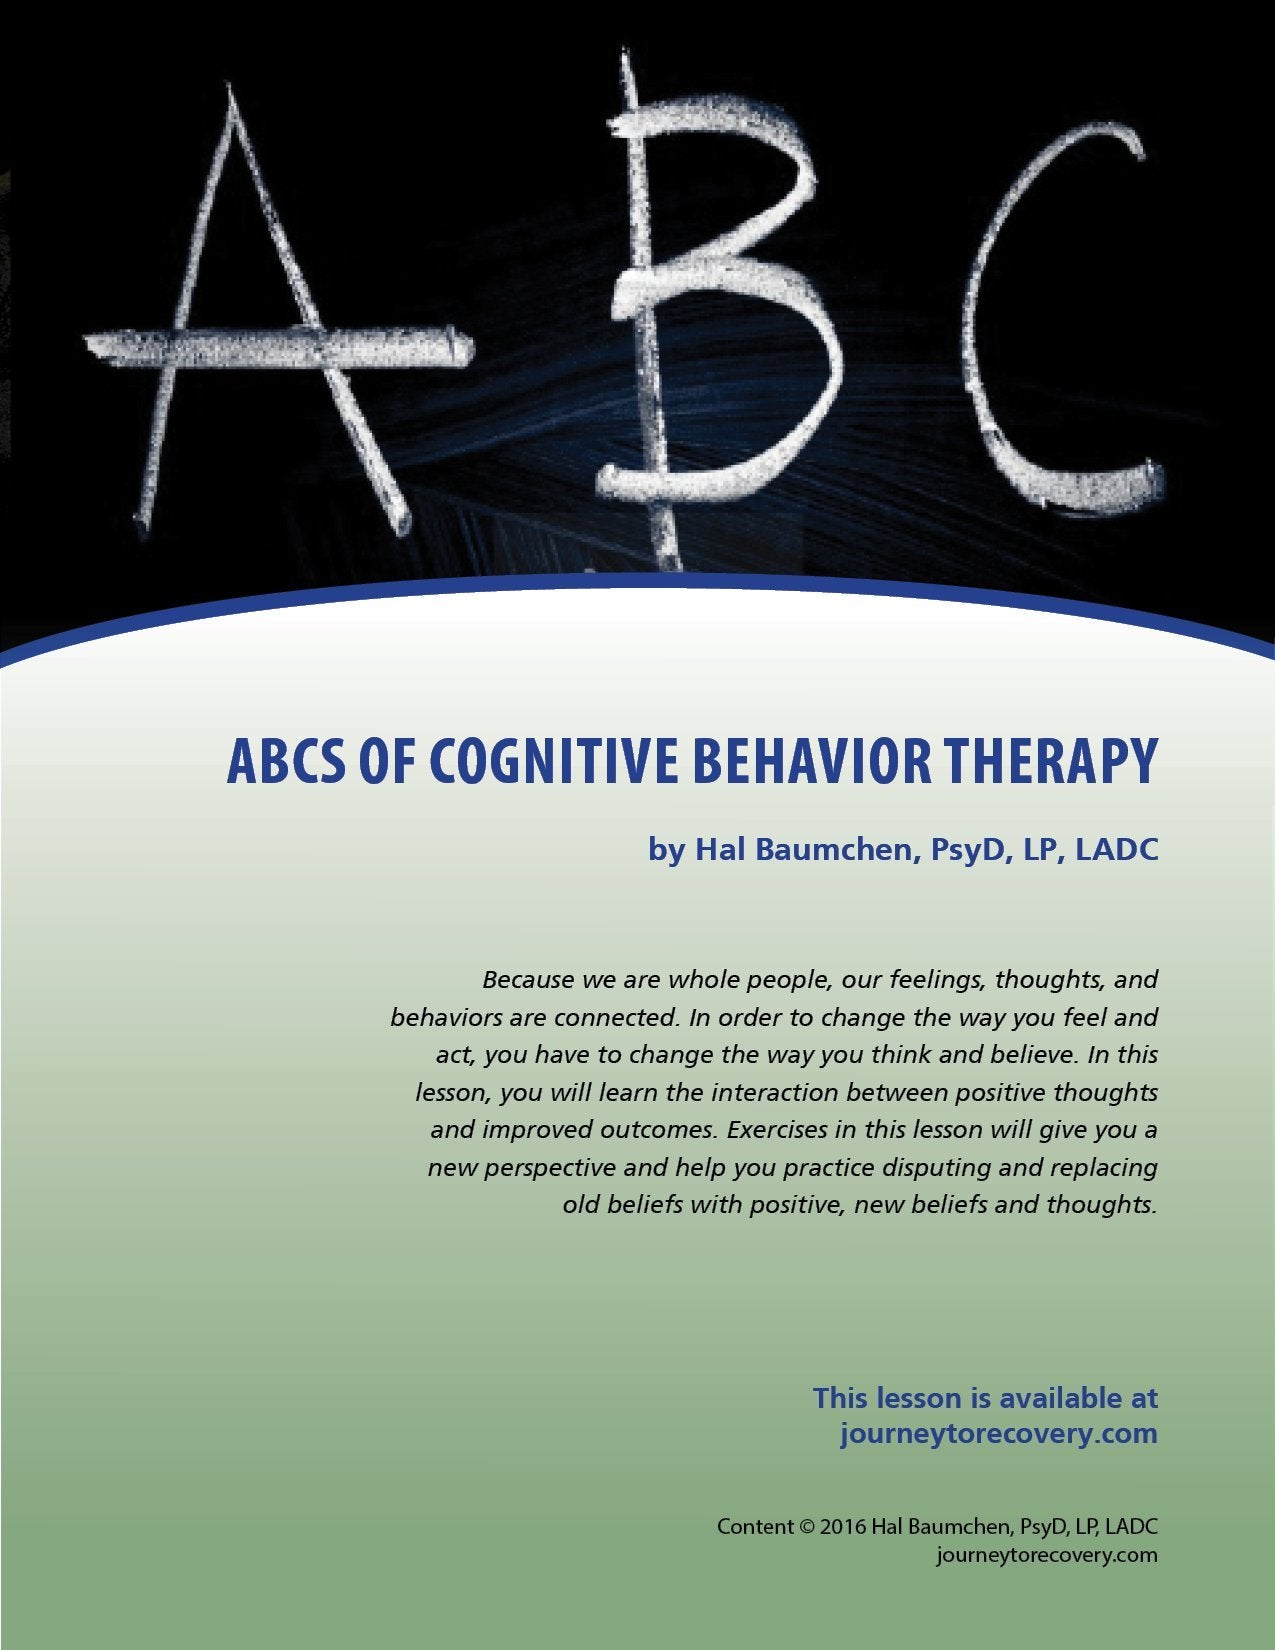 ABCs of Cognitive Behavioral Therapy